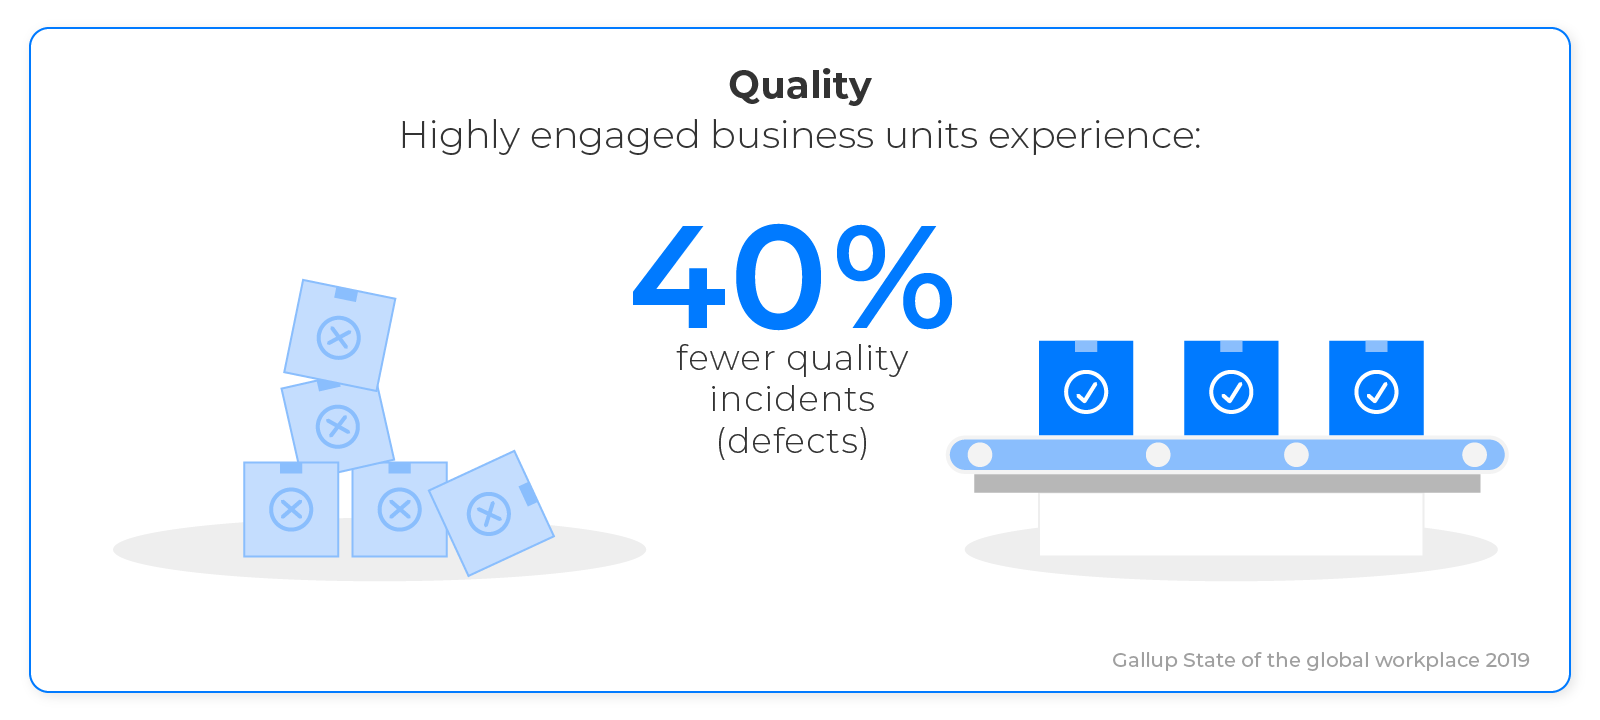 Engaged Businesses experience 40% fewer quality incidents